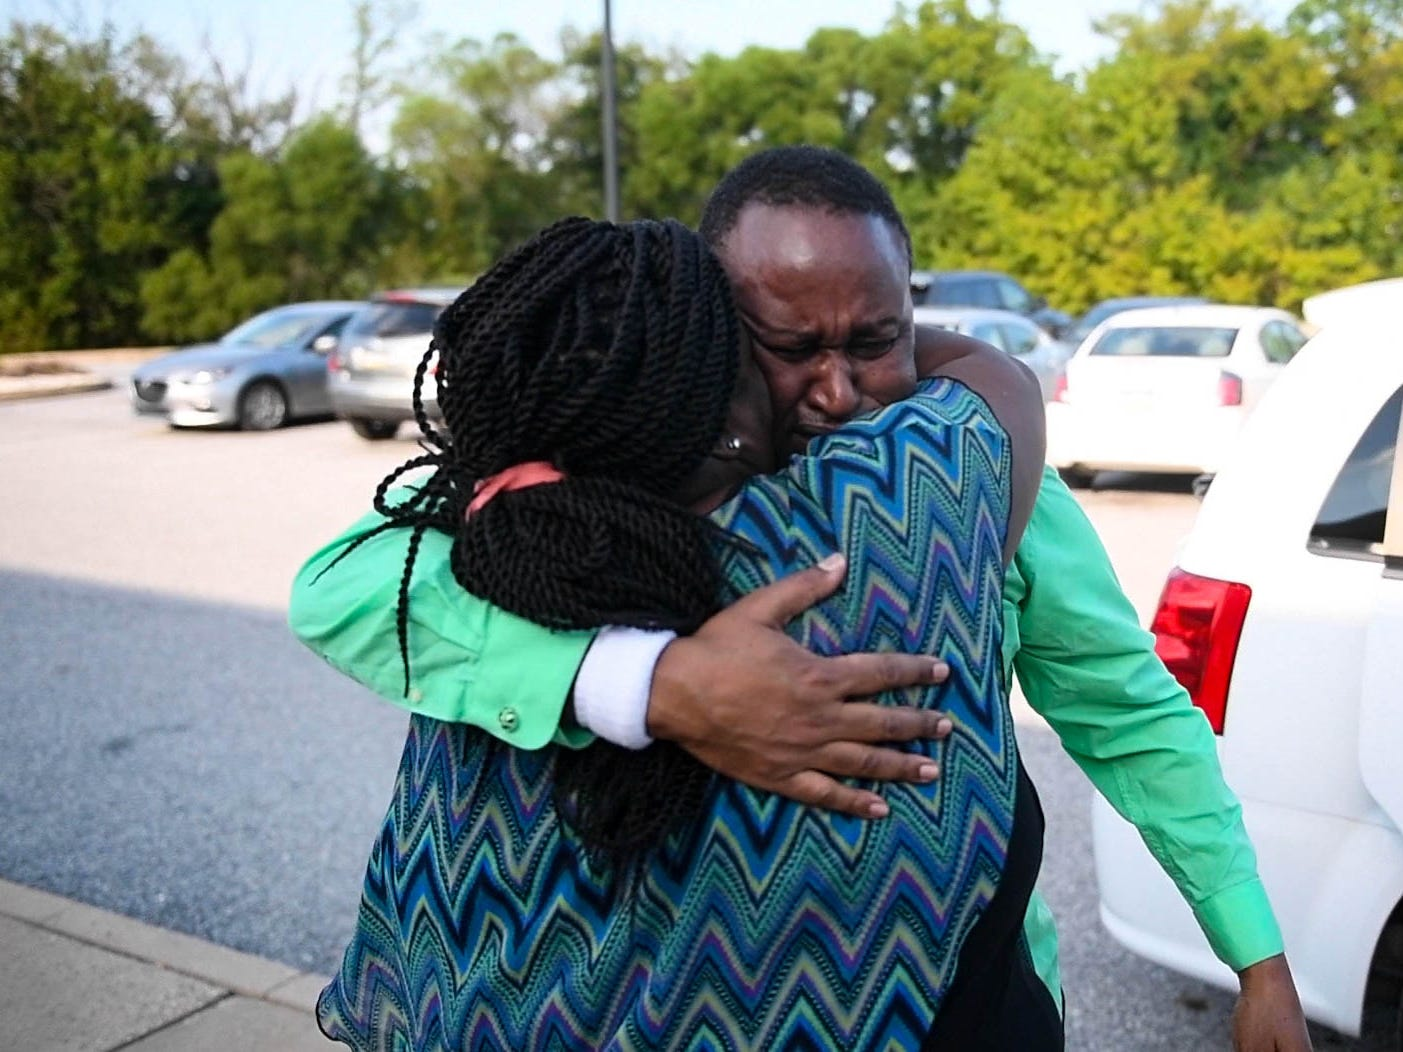 Grace Kuria is the first to get to Gichuhi, throwing her arms around him with tears in her eyes.